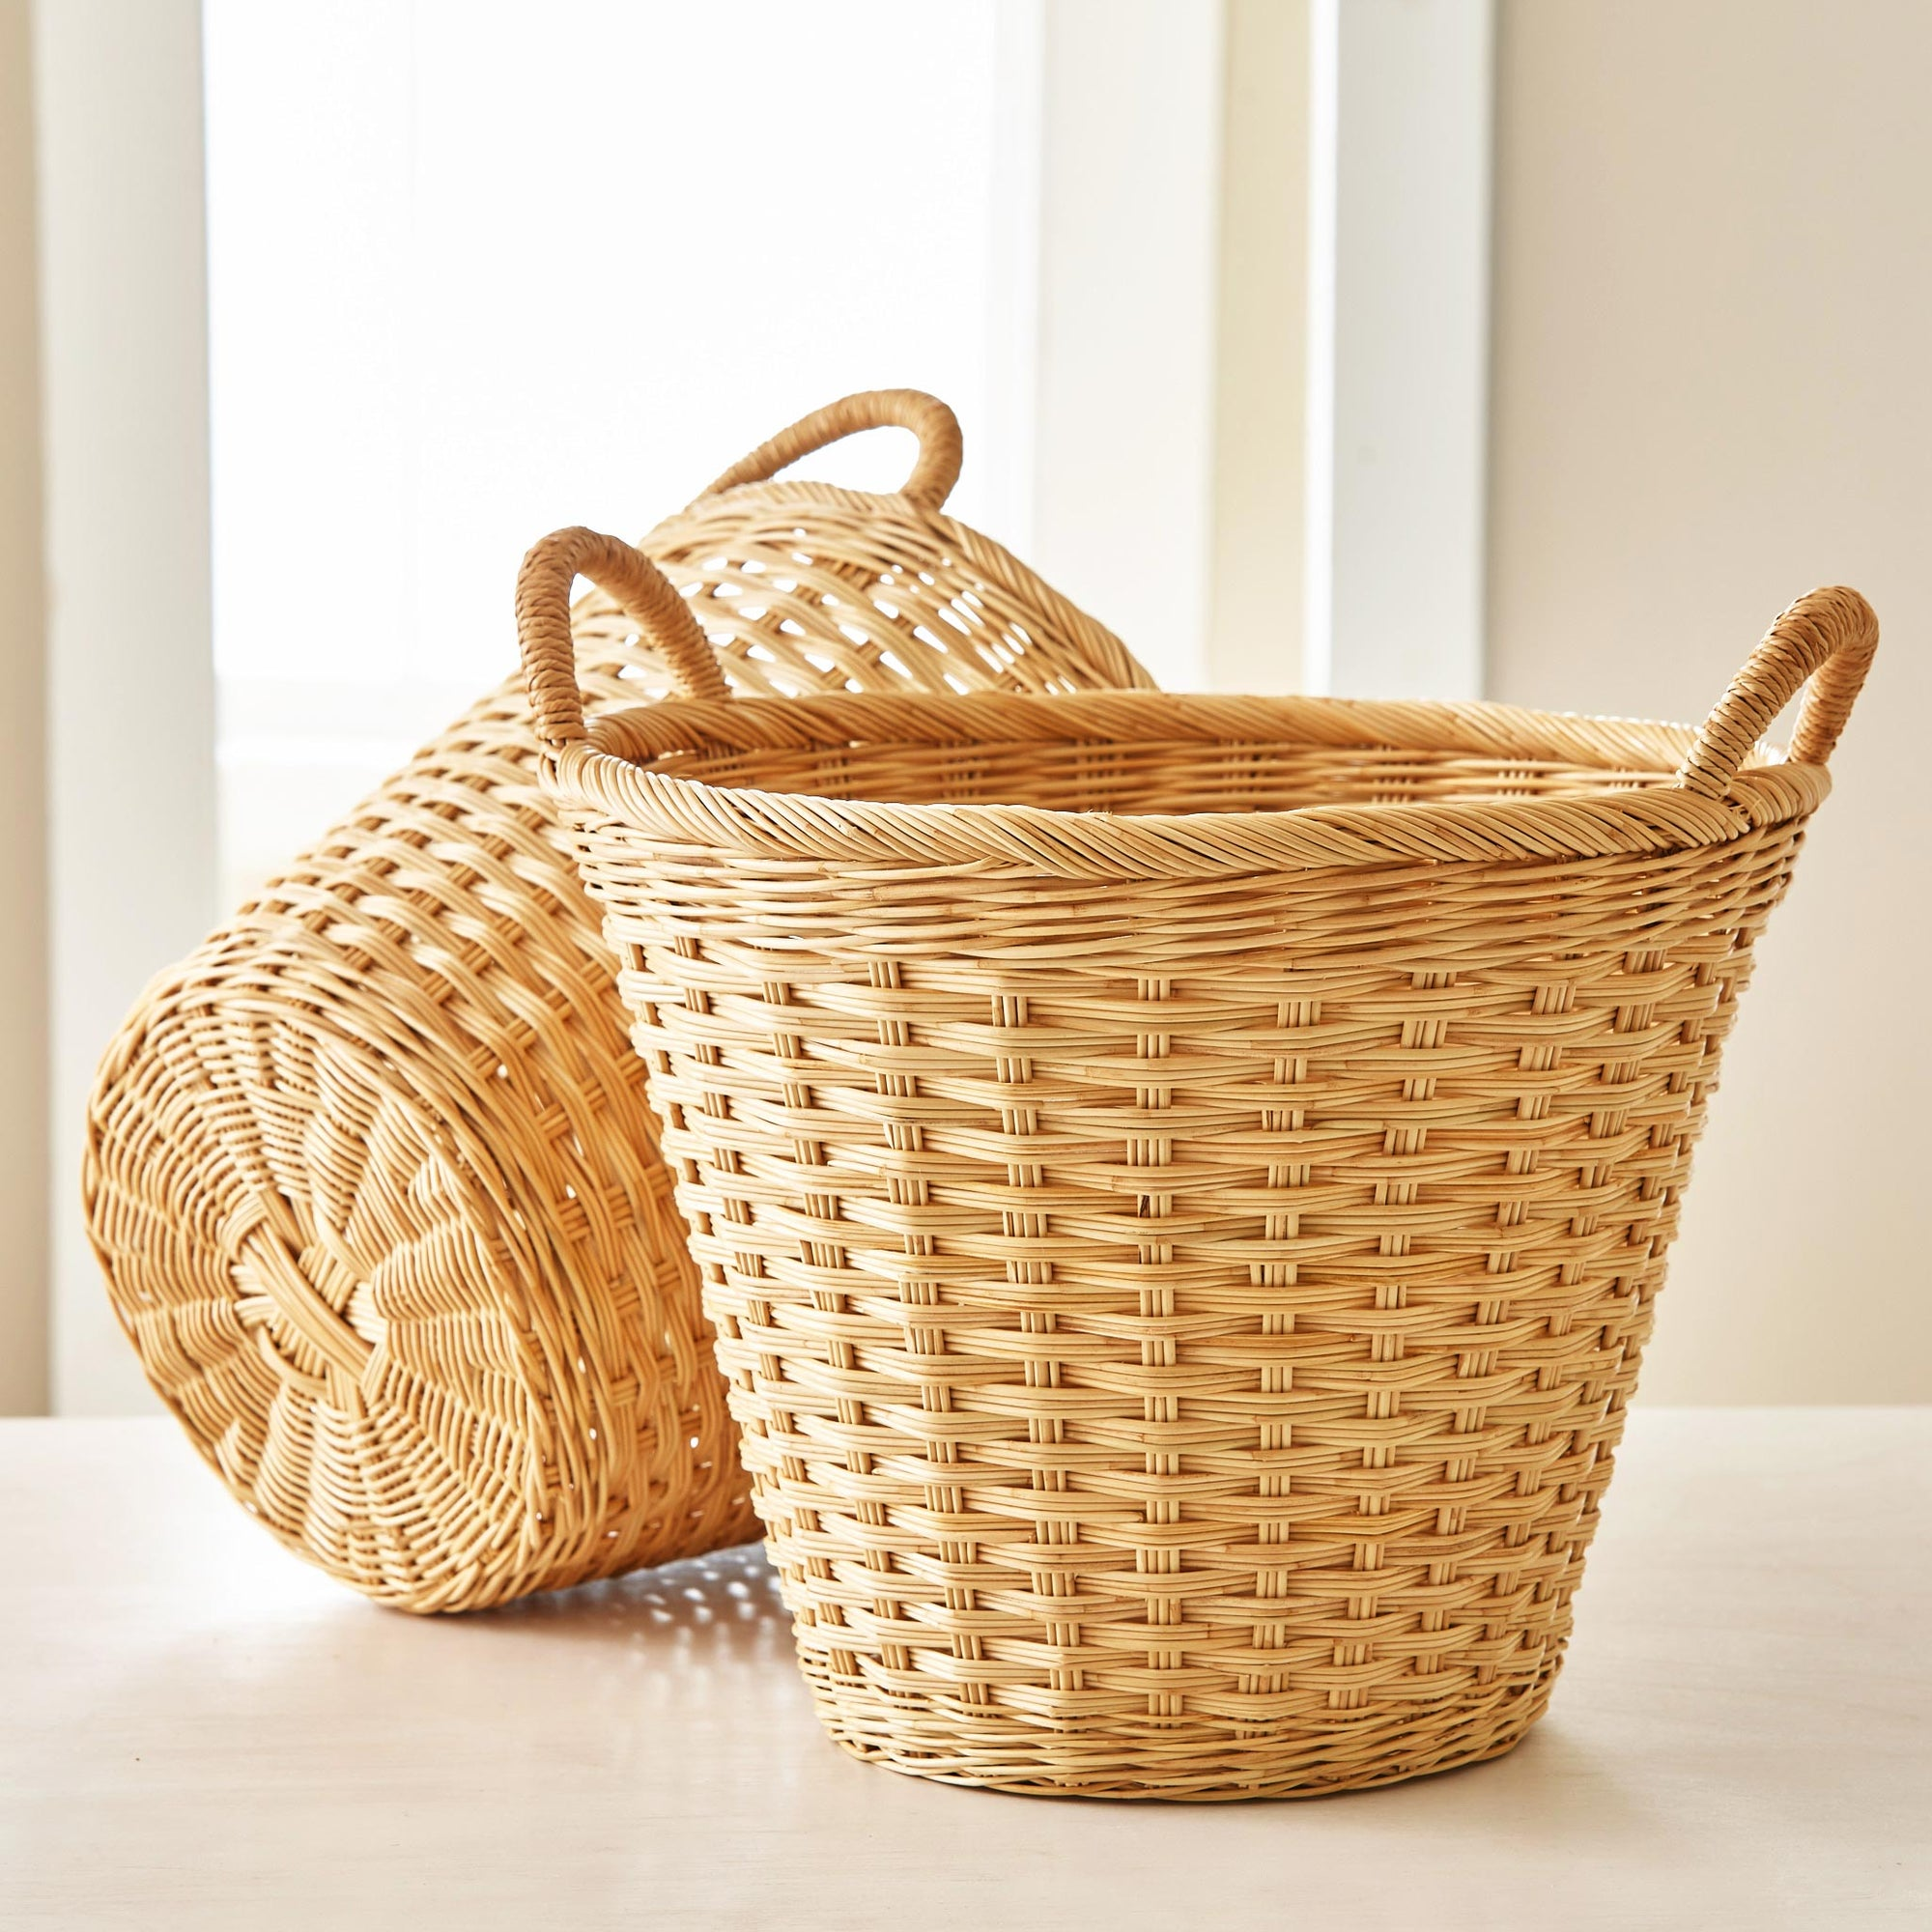 ALL-PURPOSE BUSHEL BASKET